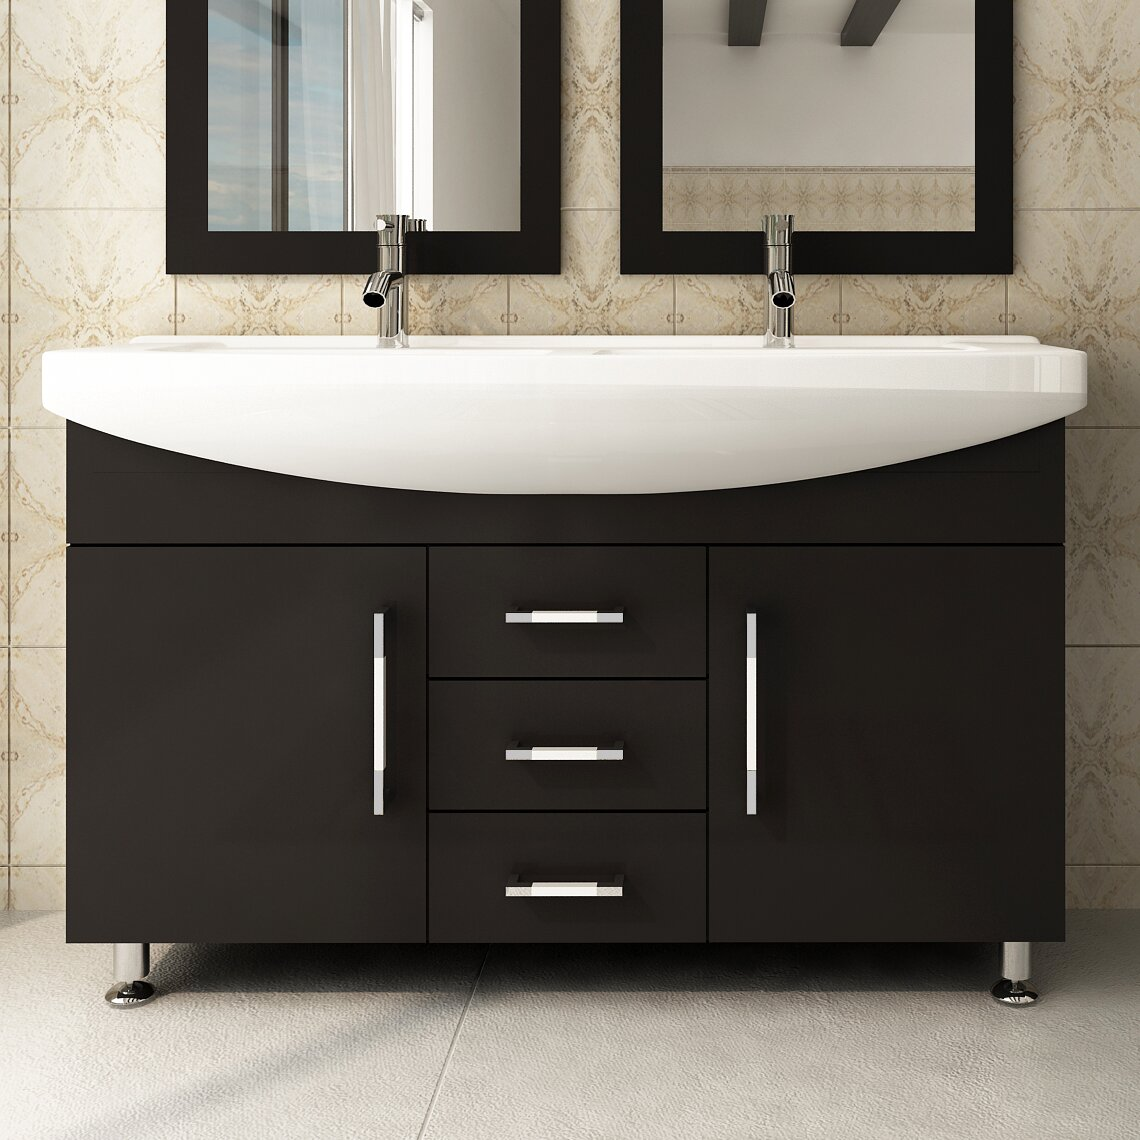 jwh living celine 48 double bathroom vanity set reviews wayfair